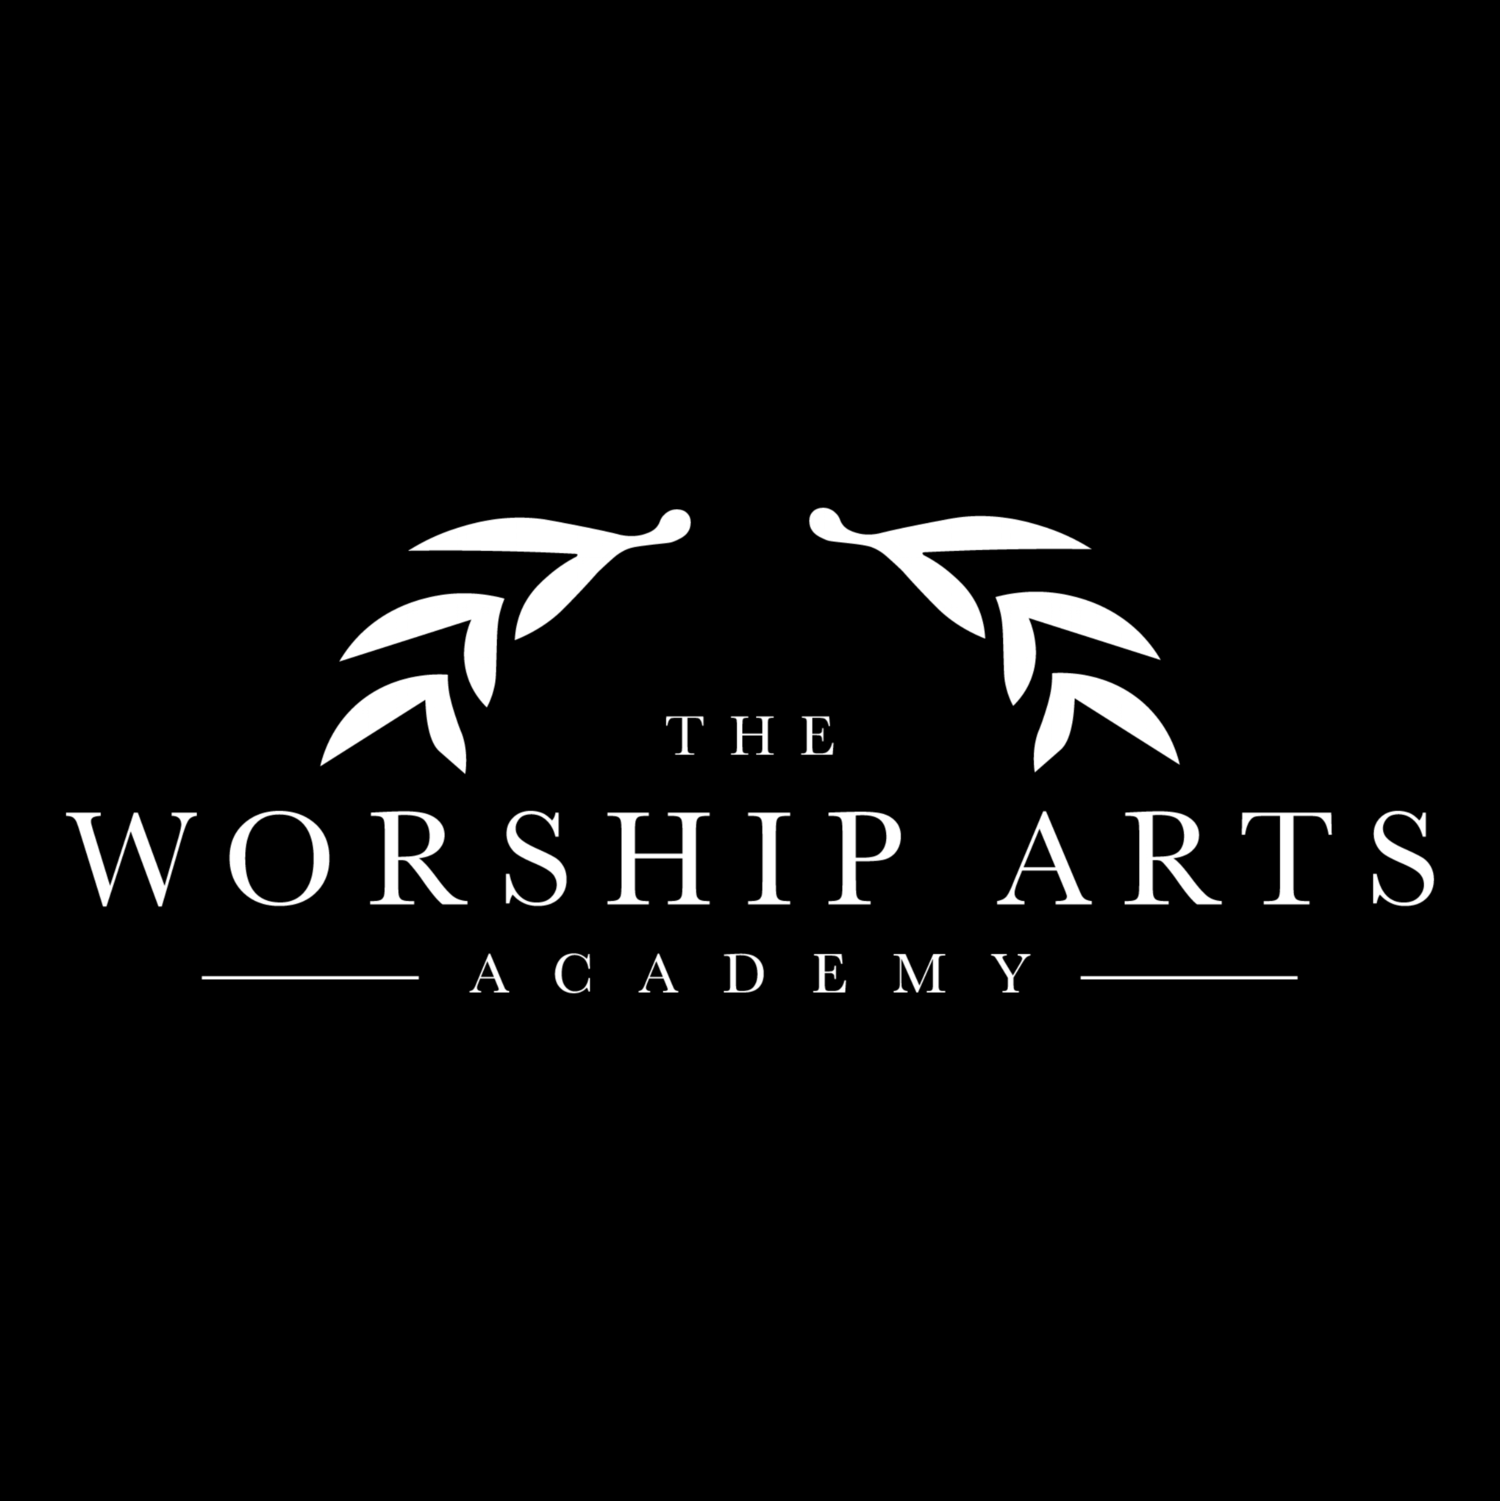 The Worship Arts Academy